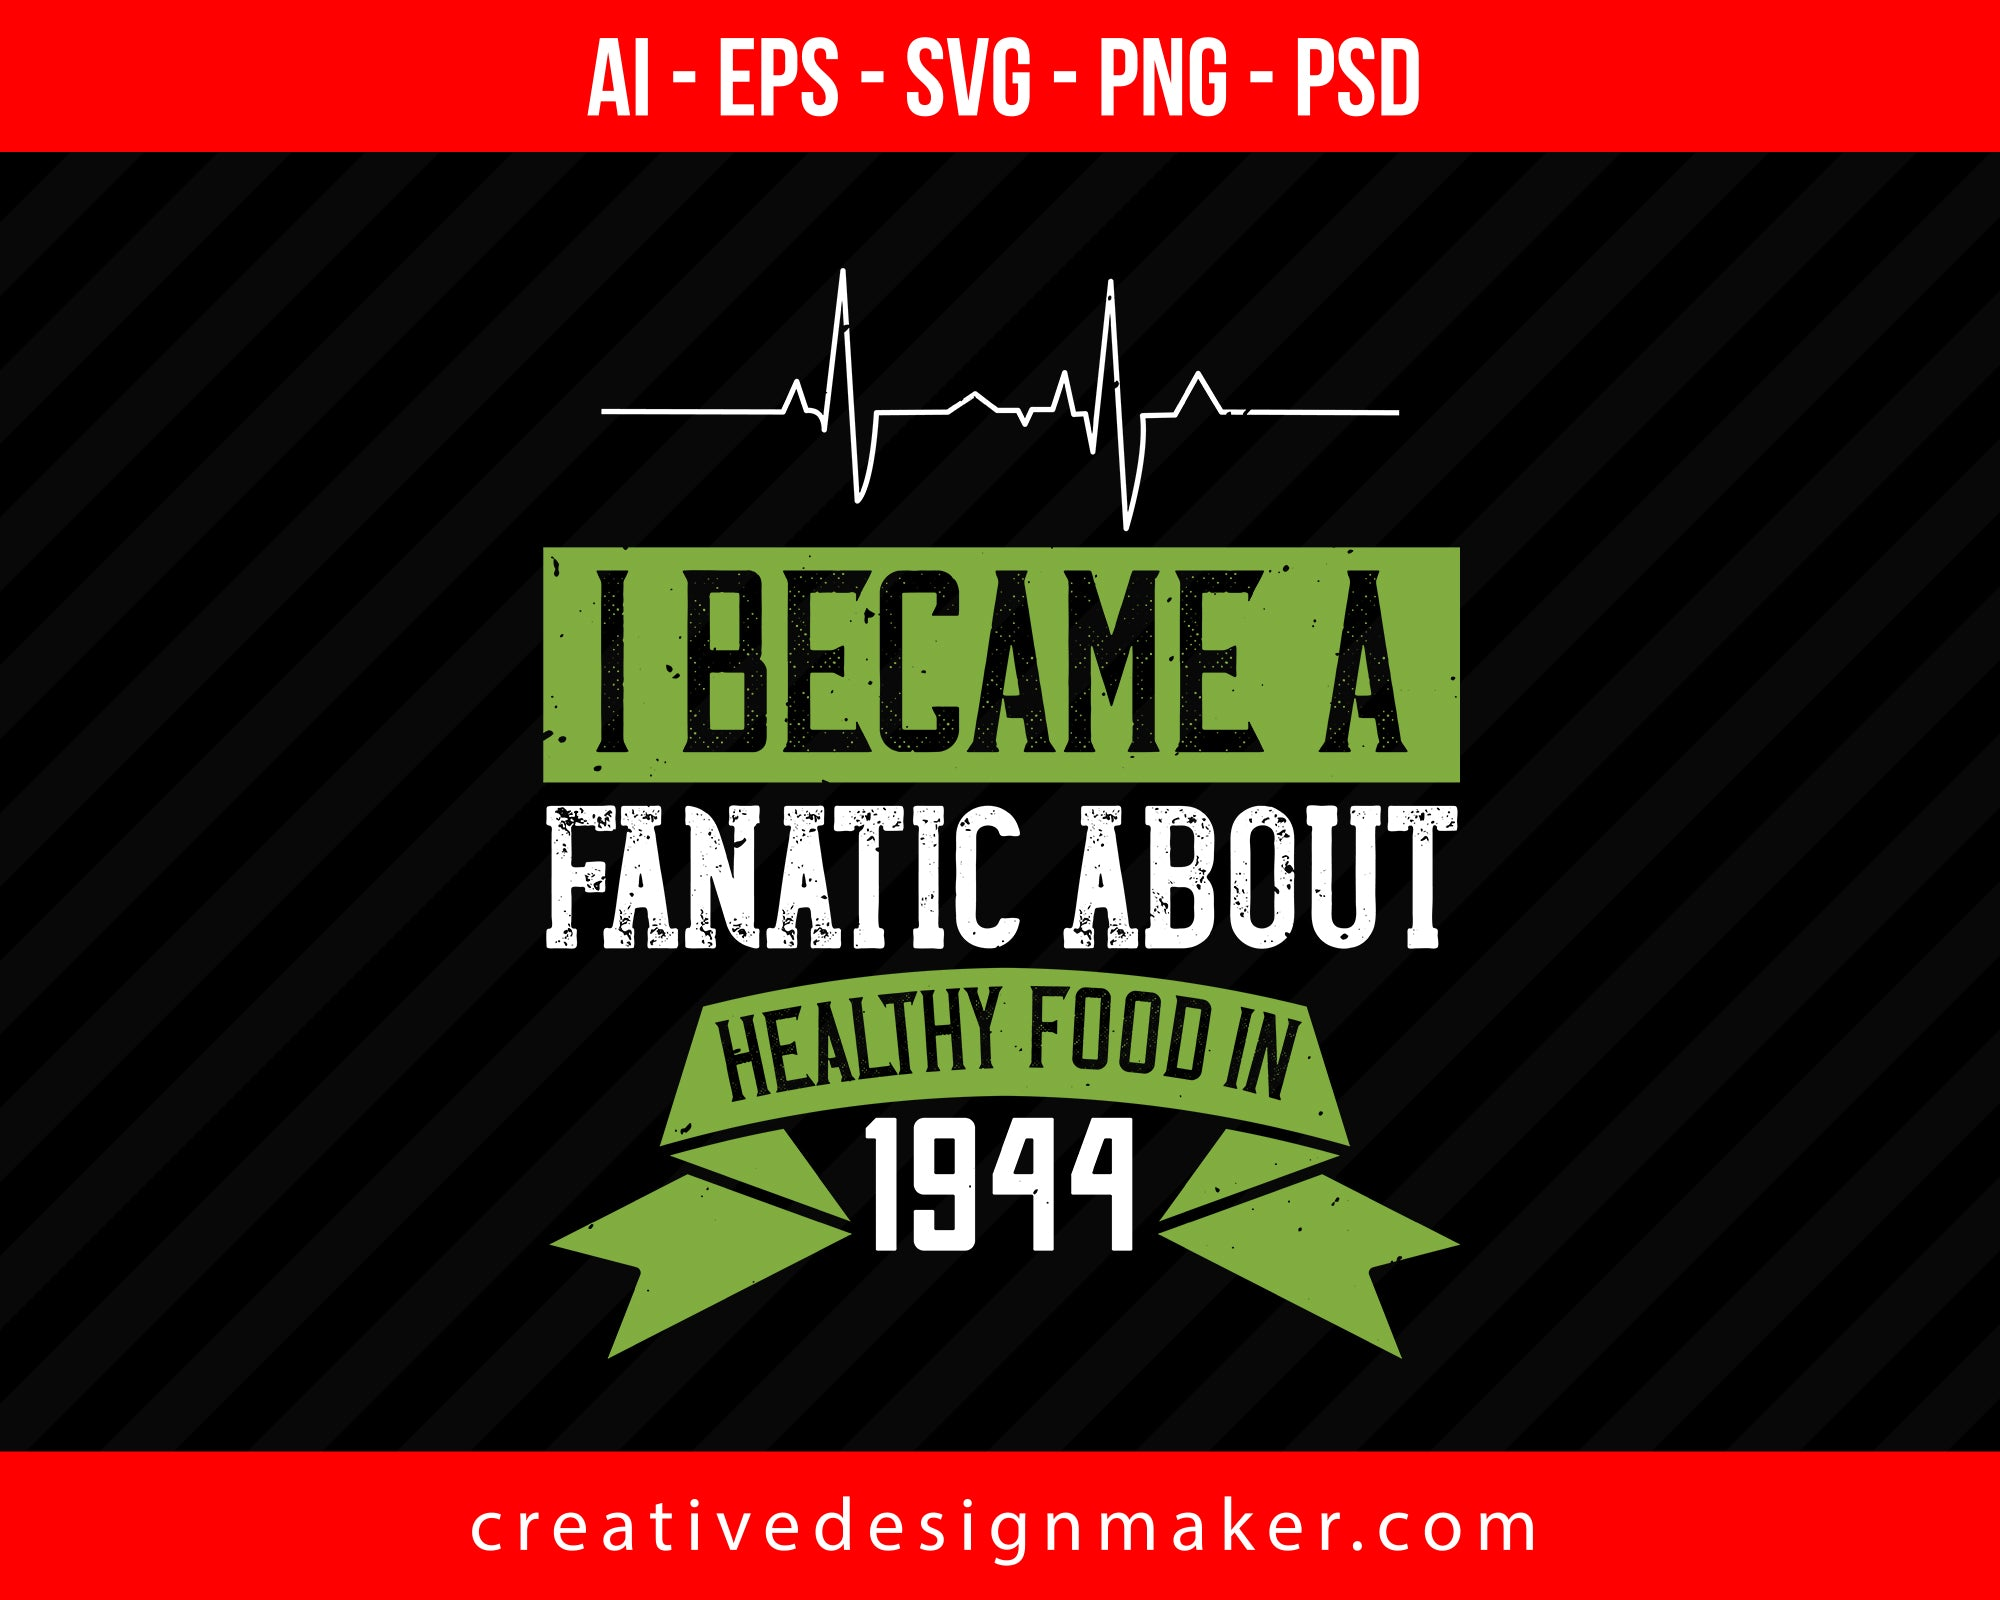 I Became A Fanatic About Healthy Food In 1944 World Health Print Ready Editable T-Shirt SVG Design!